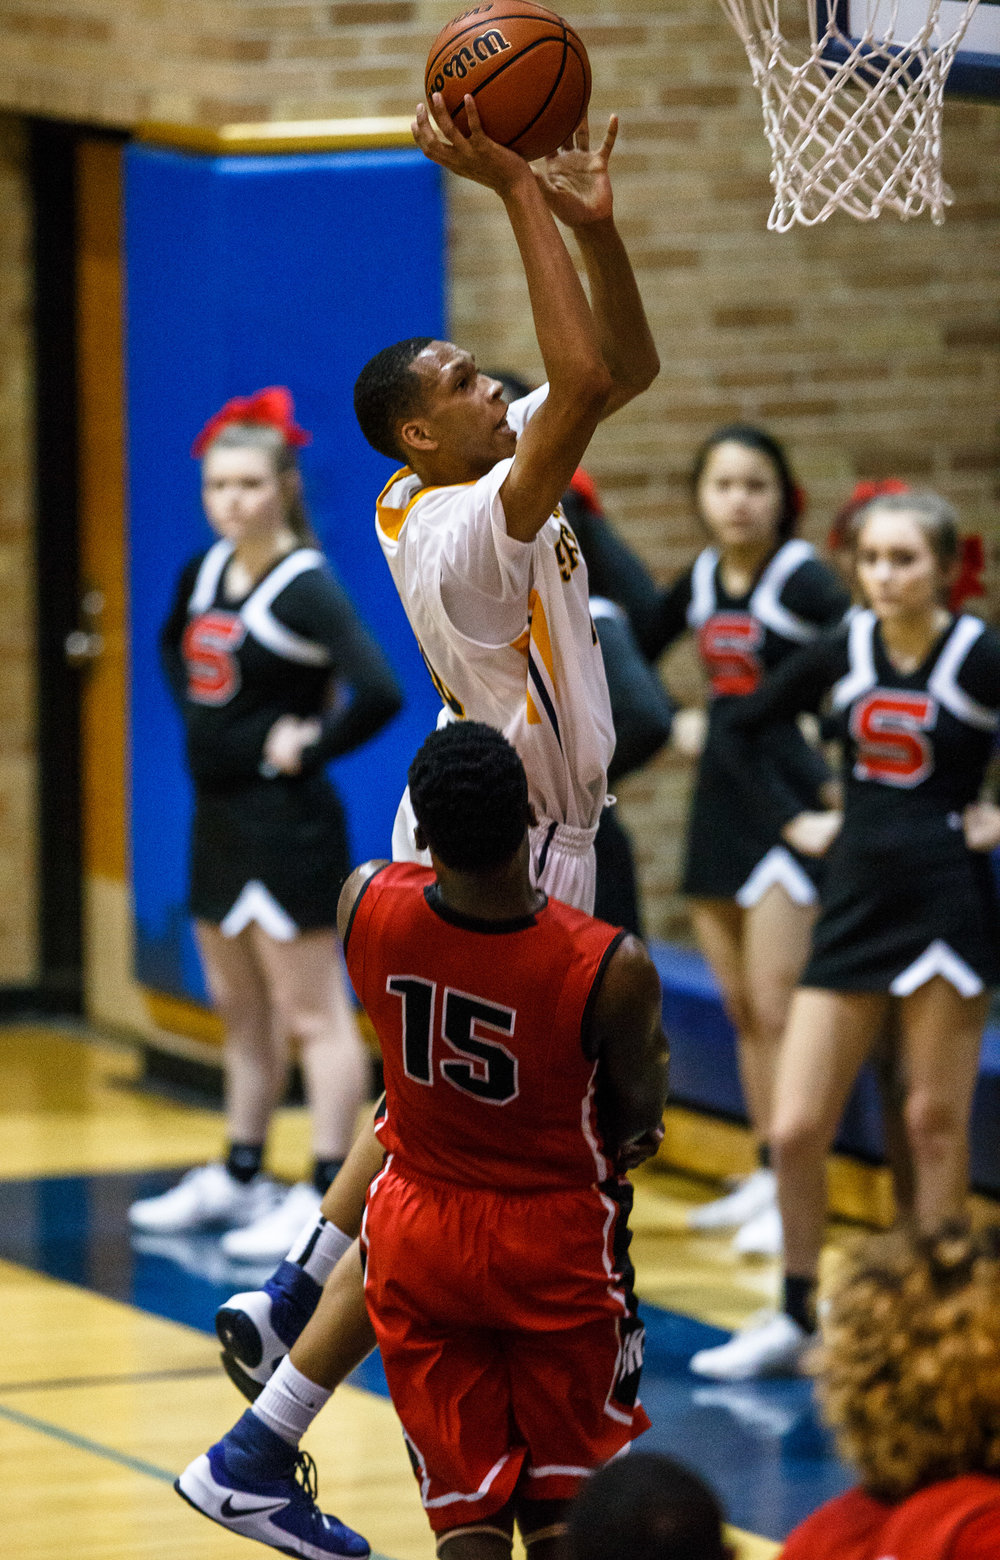 Southeast's Isaiah Walton (10) goes up for a basket against Springfield's Ananise Mackey (15) in the second quarter at Herb Scheffler Gymnasium, Tuesday, Feb. 7, 2017, in Springfield, Ill. [Justin L. Fowler/The State Journal-Register]